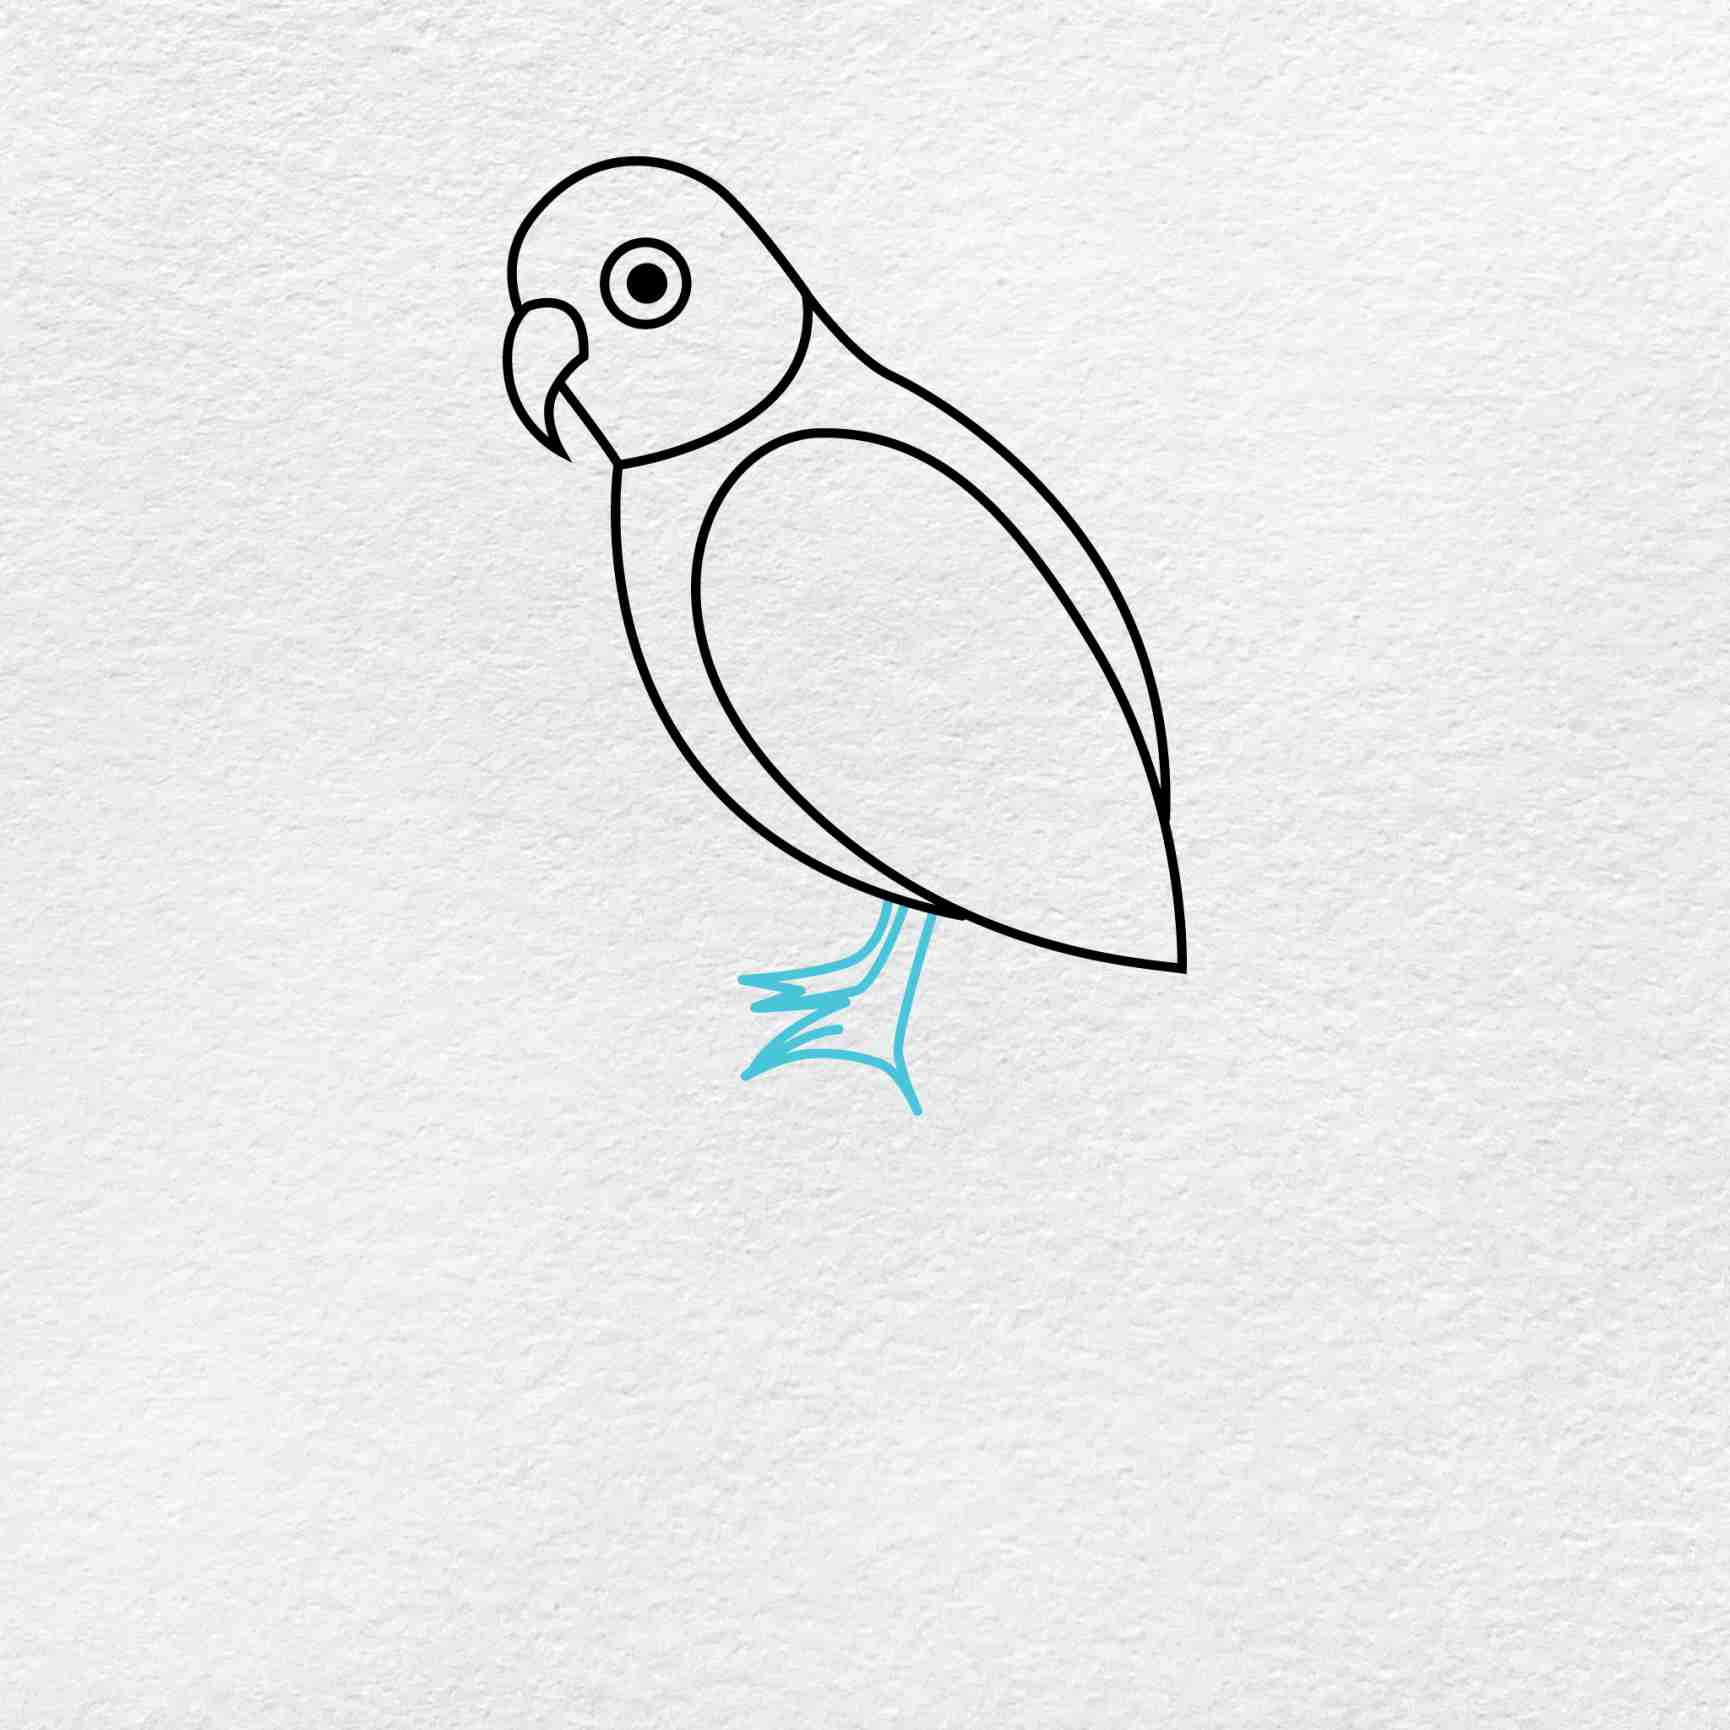 How To Draw A Parrot: Step 4